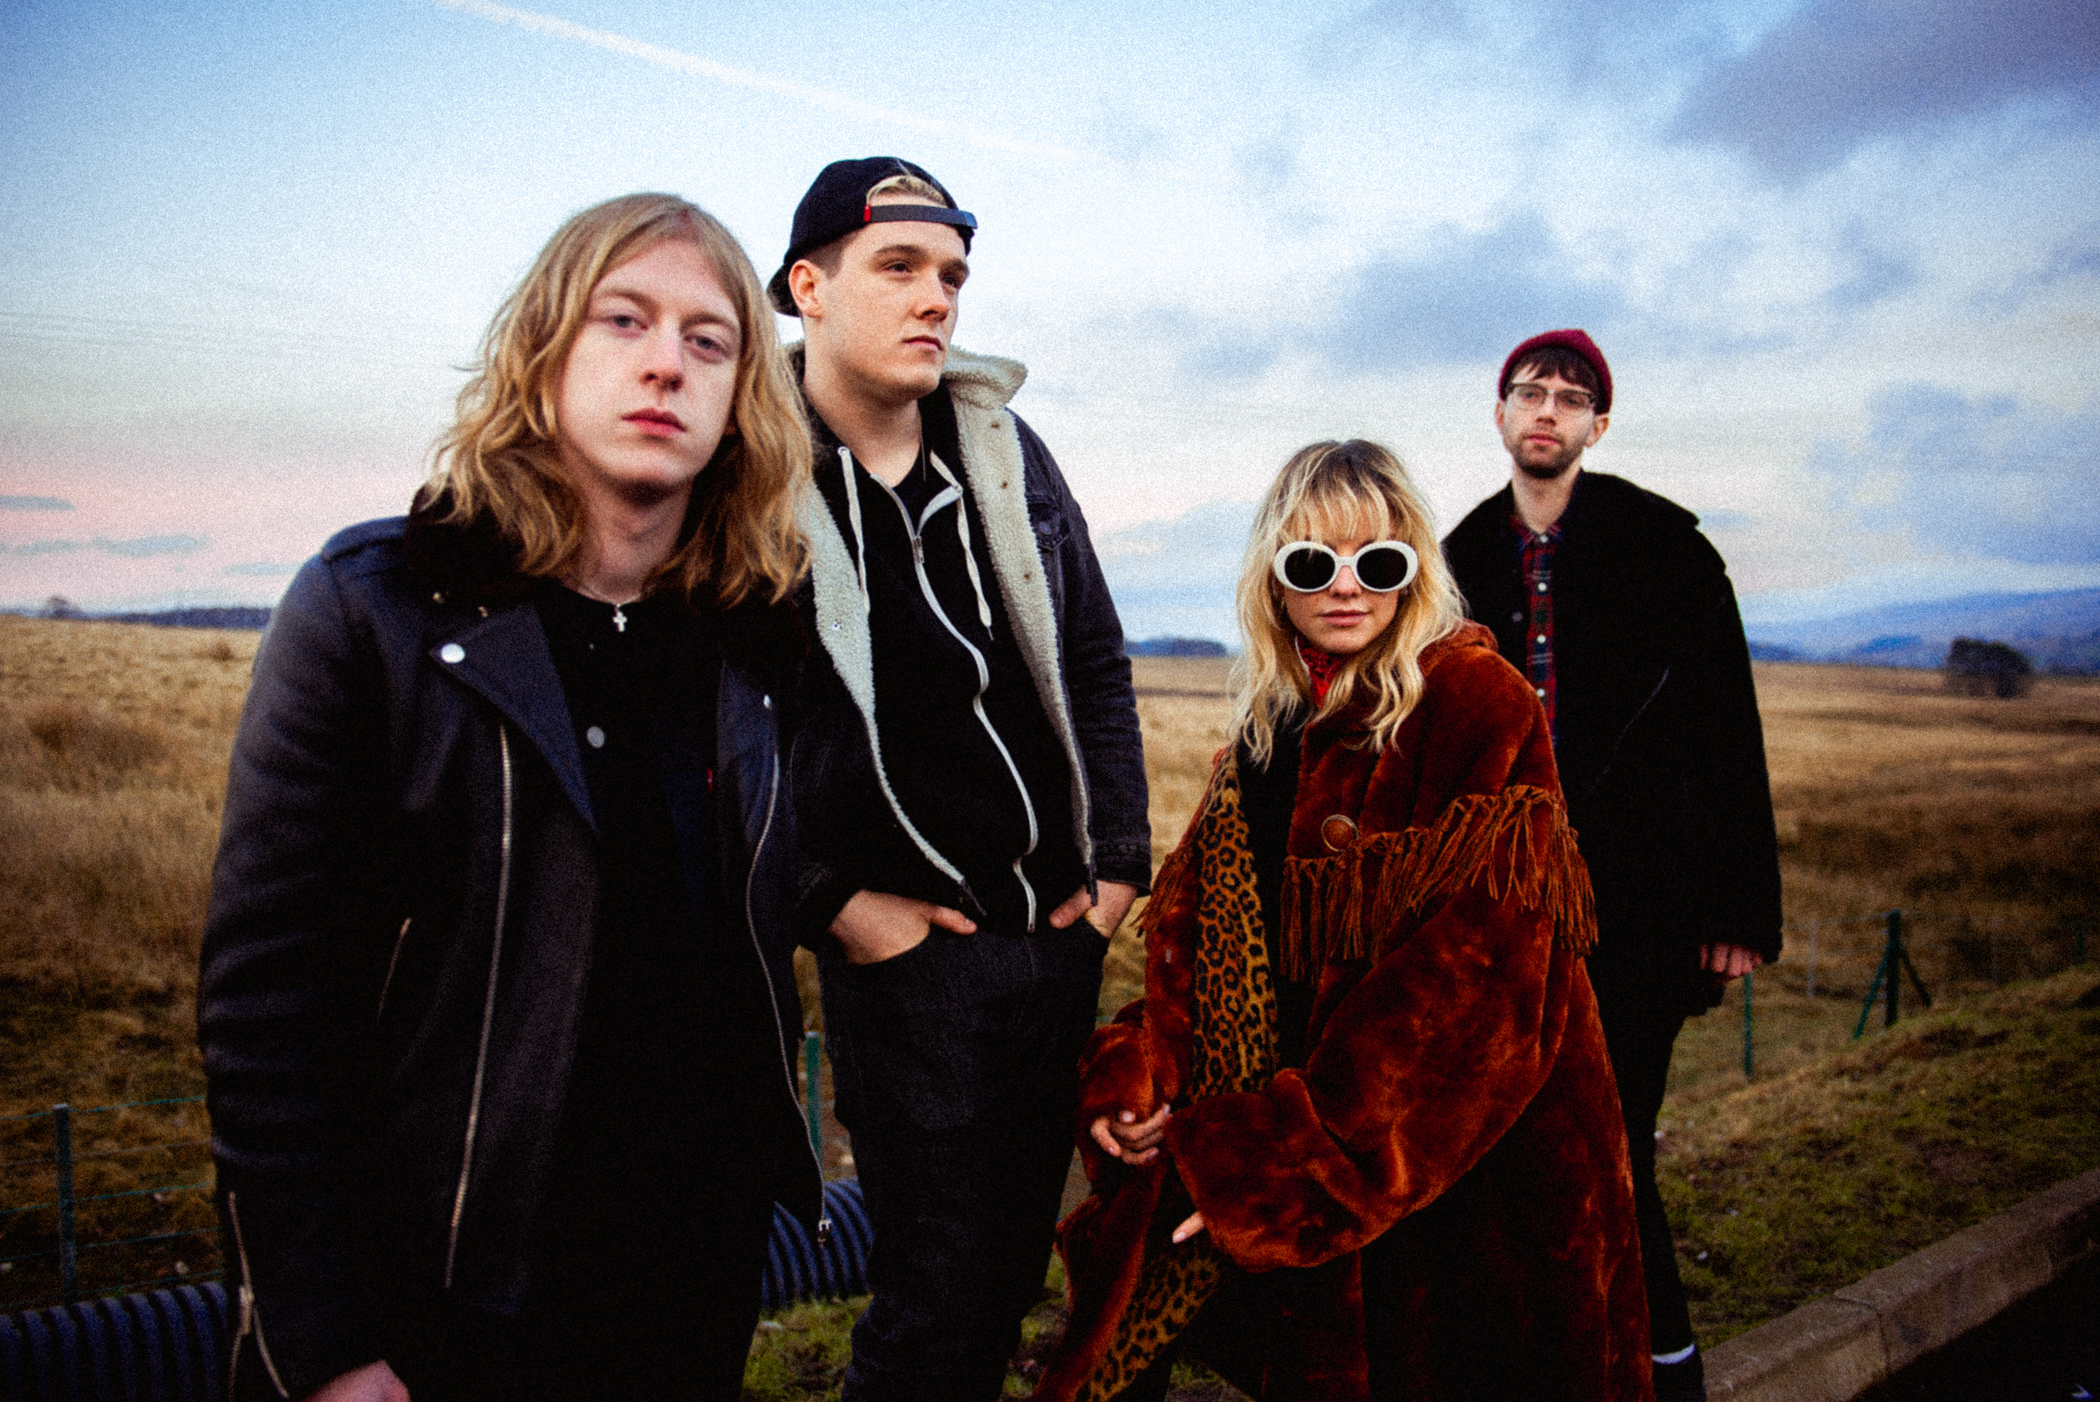 """Anteros Share Candid Tour Moments in New """"Cherry Drop"""" Music Video"""